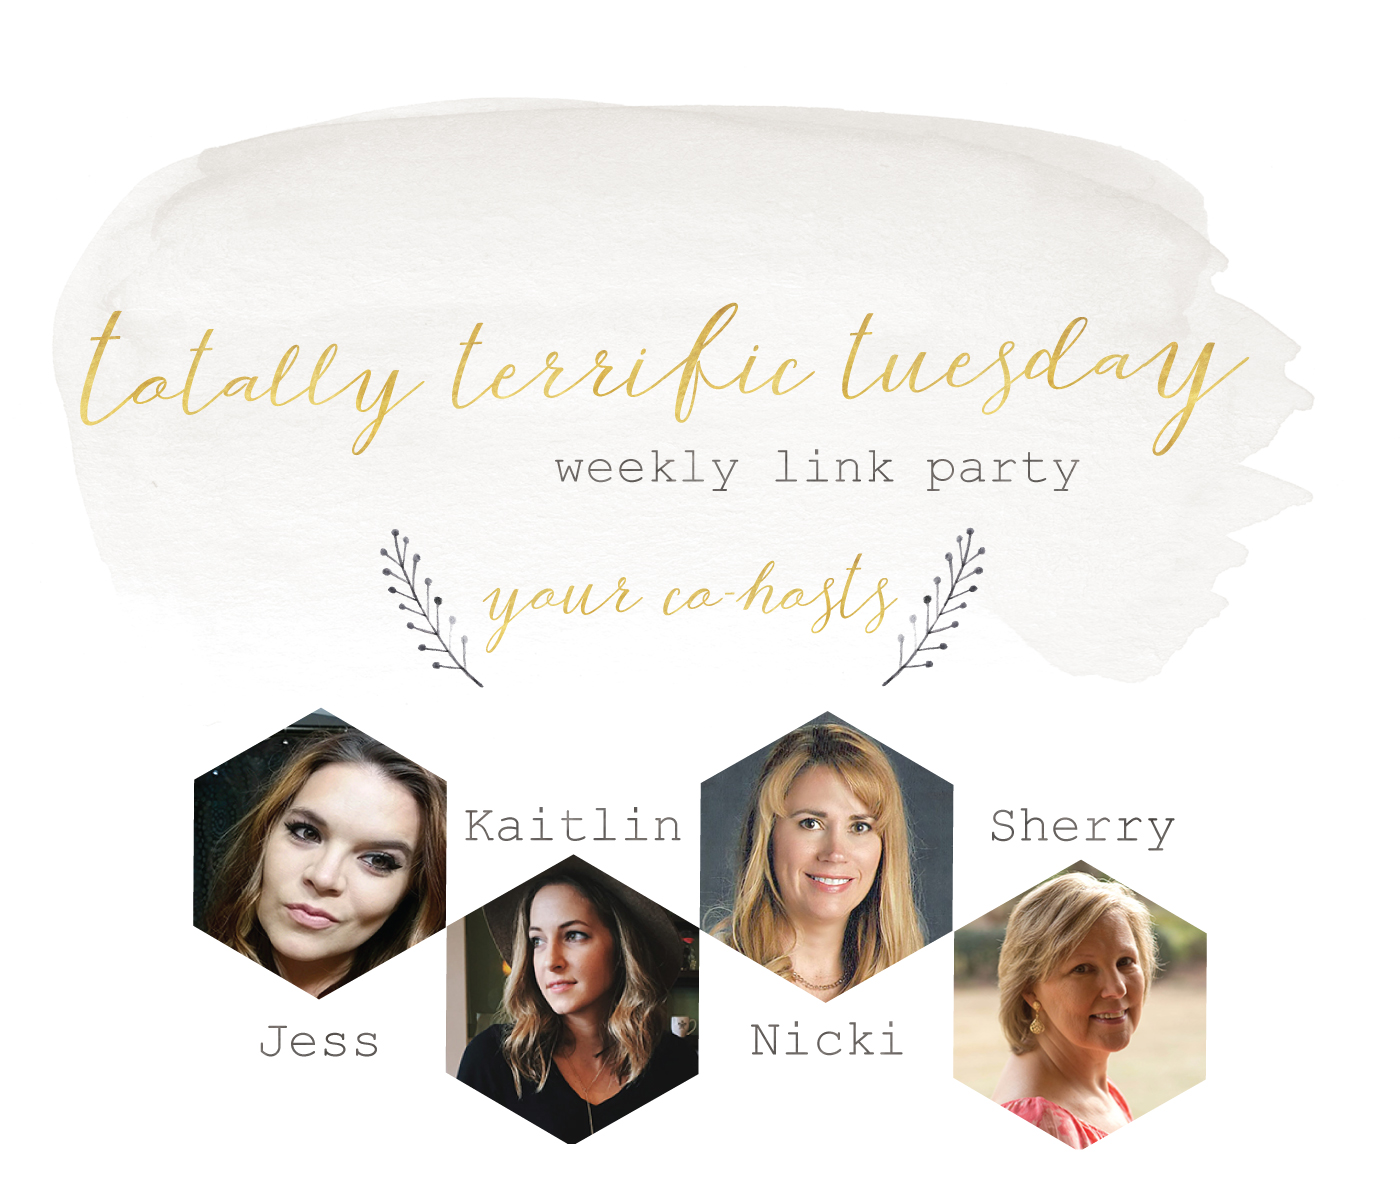 Totally Terrific Tuesday Weekly Link Party